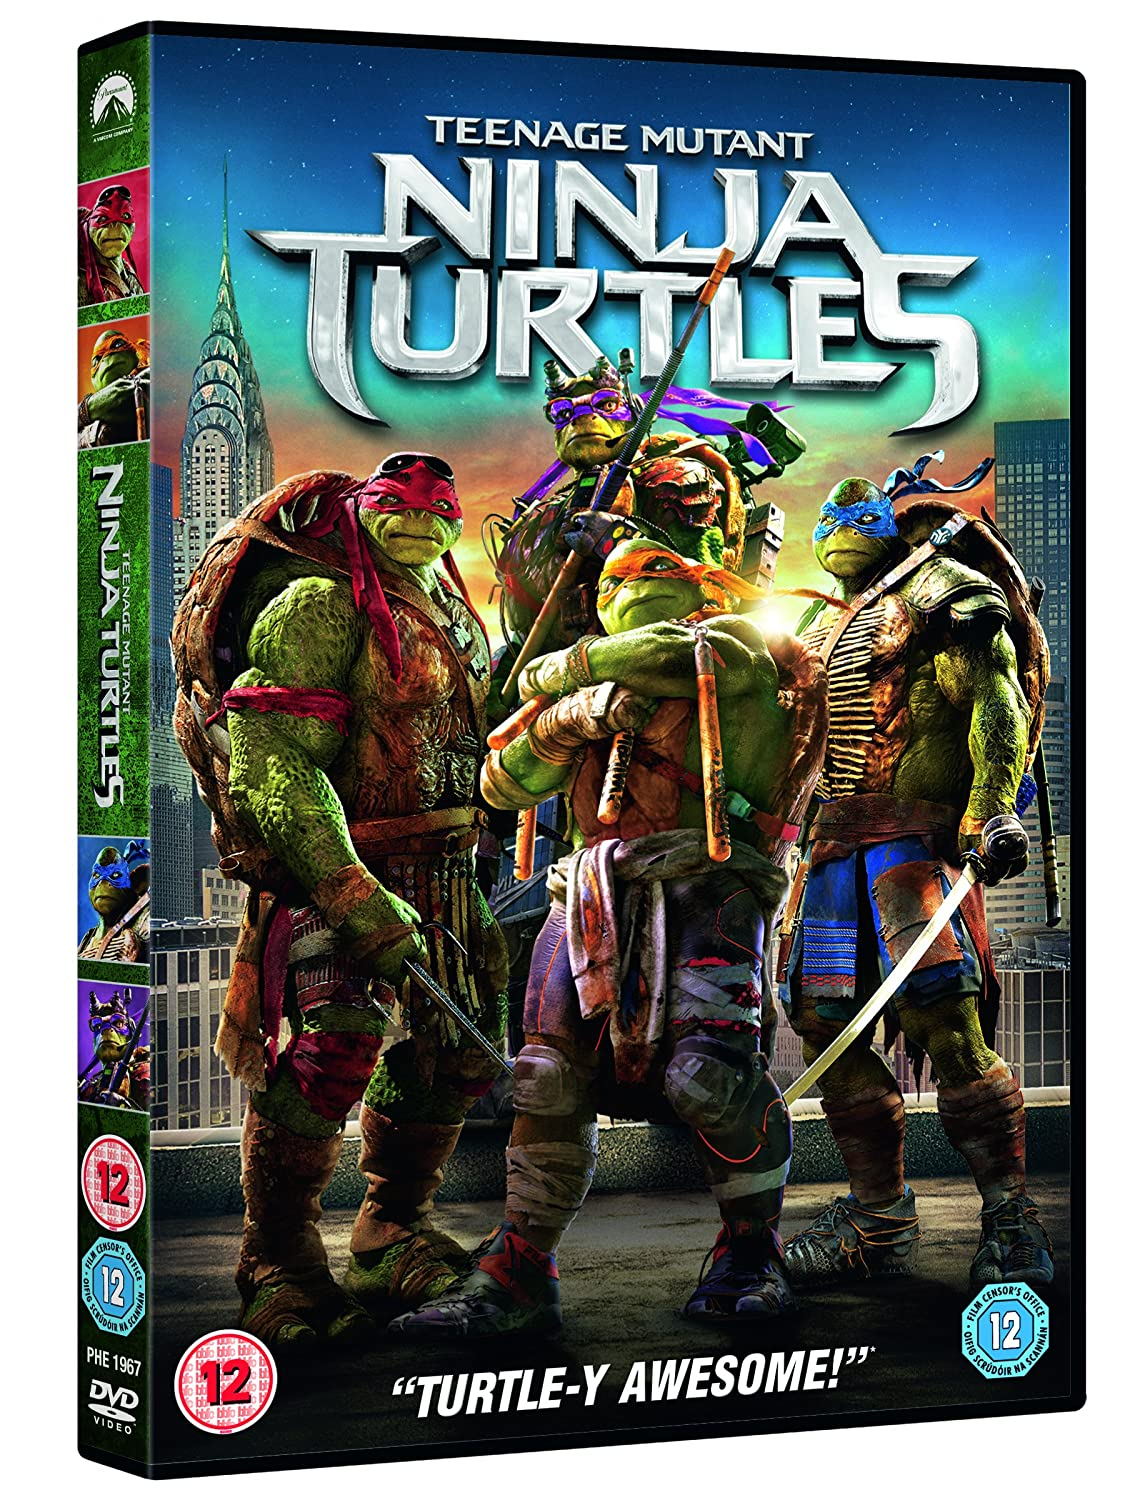 Amazon.com: Teenage Mutant Ninja Turtles [DVD]: Movies & TV